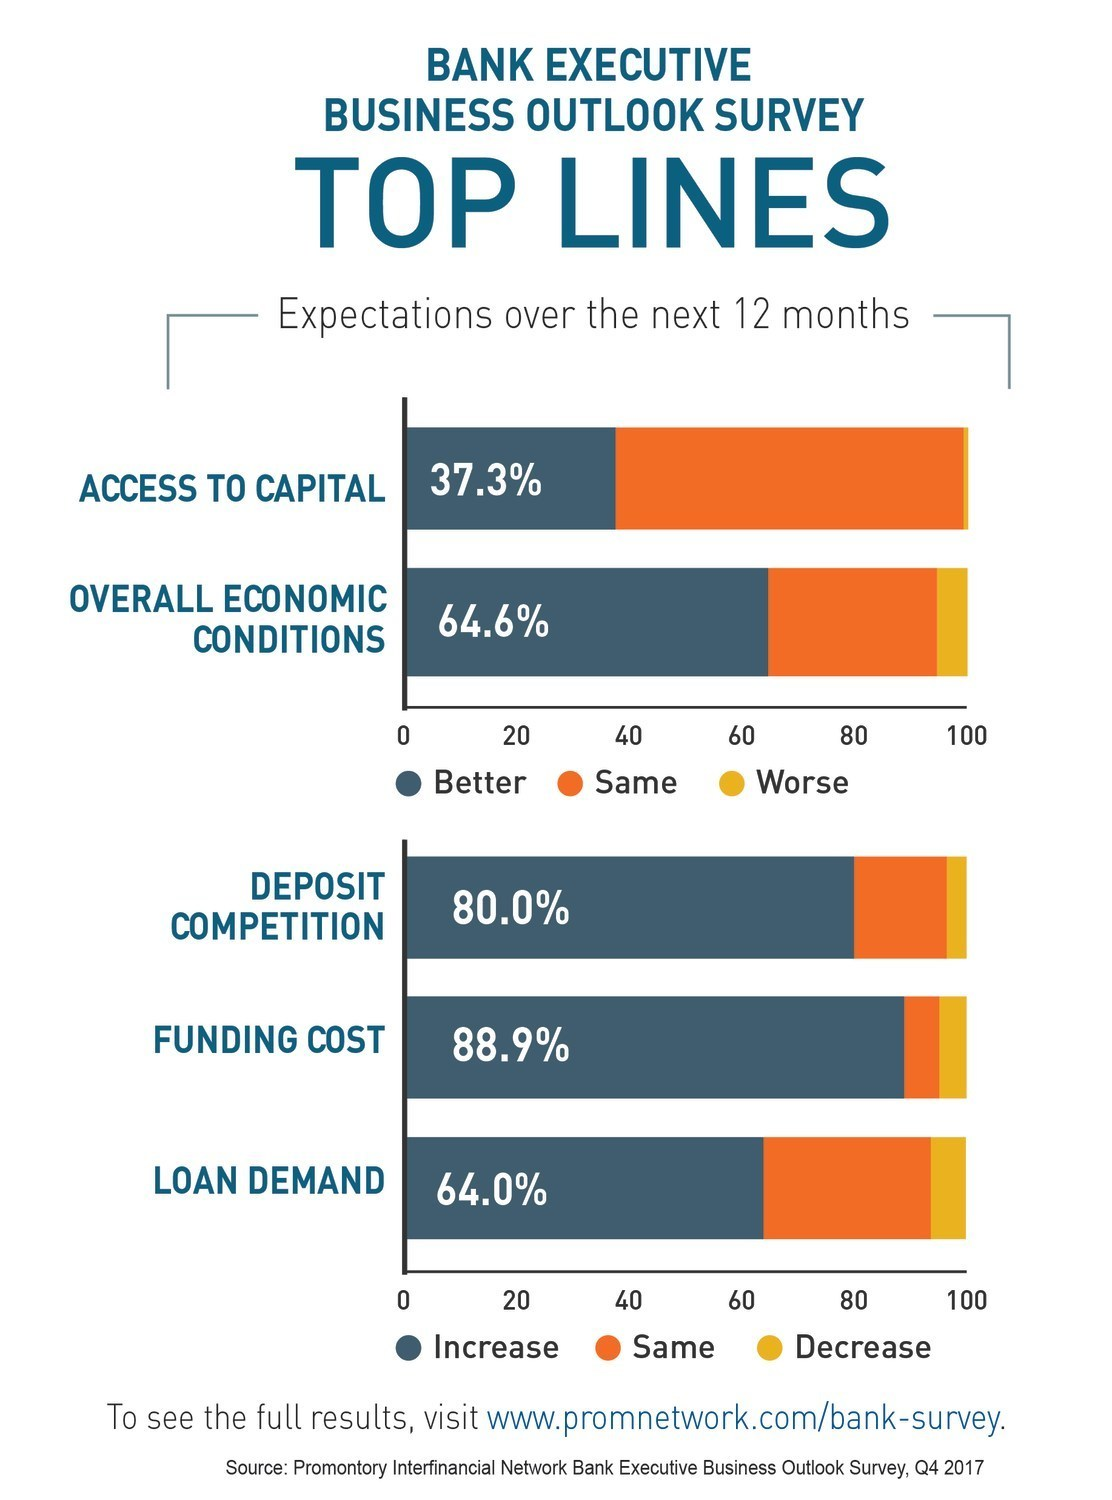 Bank Executive Business Outlook Survey Top Lines